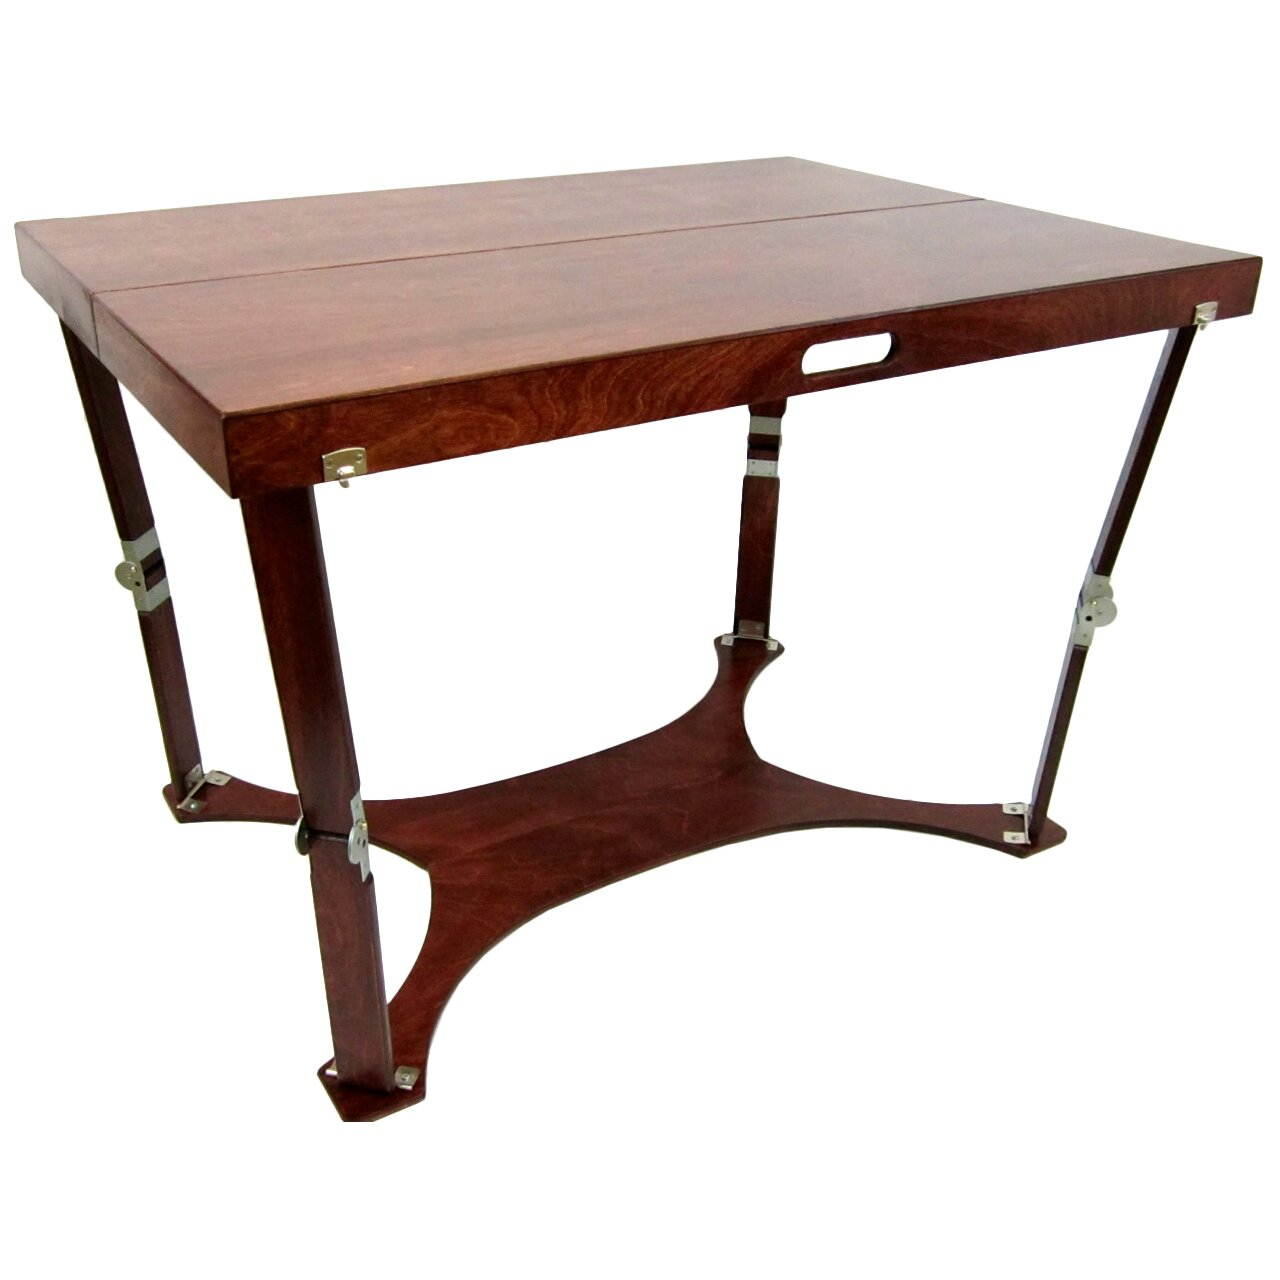 Spiderlegs picnic folding dining table reviews - Folding dining table ...